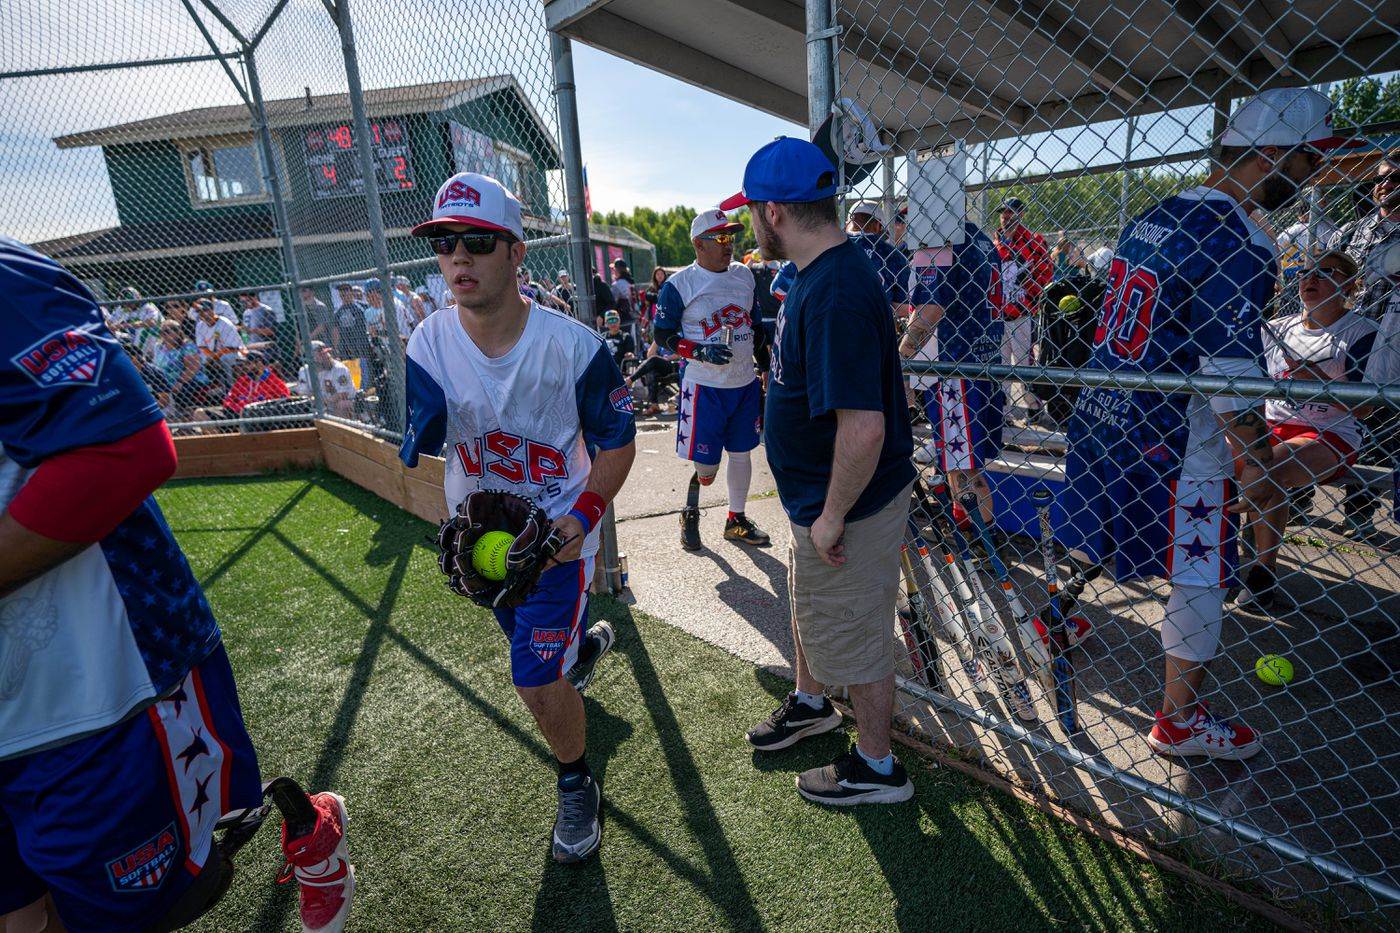 USA Patriots outfielder Scotty Fura, Jr. heads out of the dugout during a game against the Momma's Boys at the 2021 Pot of Gold Tournament on Saturday, June 12, 2021 at Cartee Fields in Anchorage. Fura, 18, is the only player on the team who did not serve in the military. (Loren Holmes / ADN)